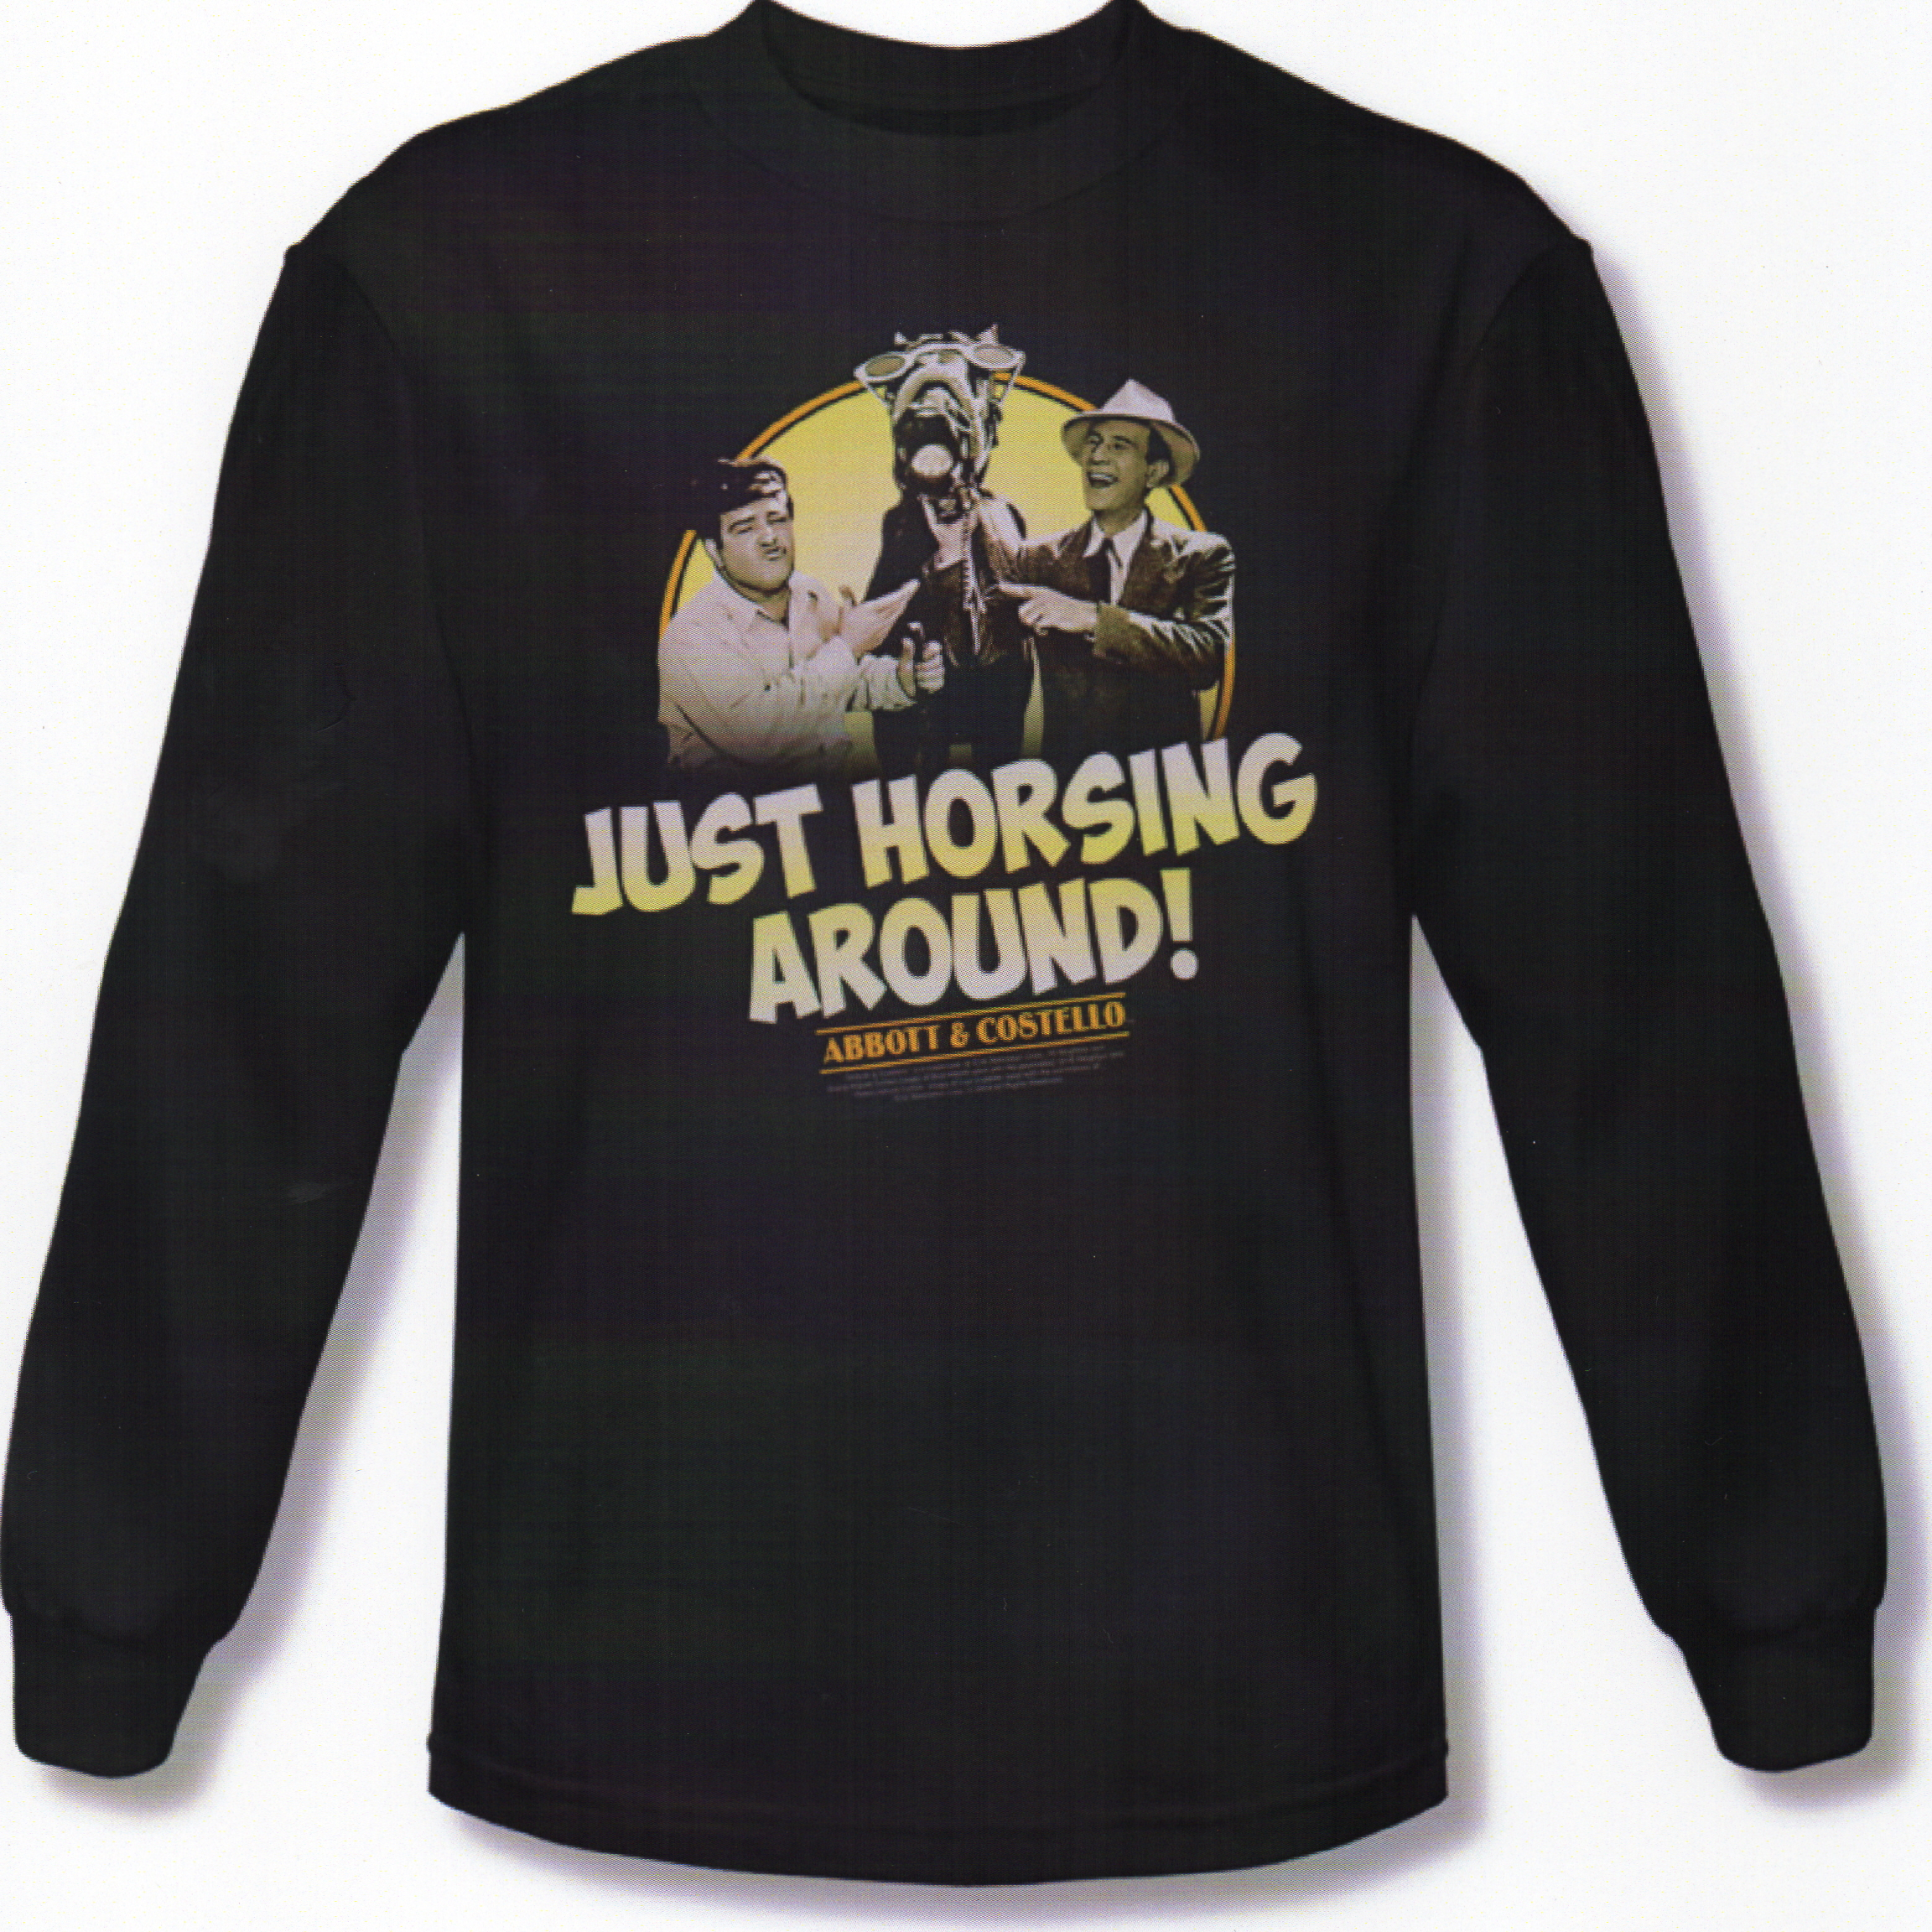 Just Horsing Around Adult Long Sleeve Tee - Click Image to Close